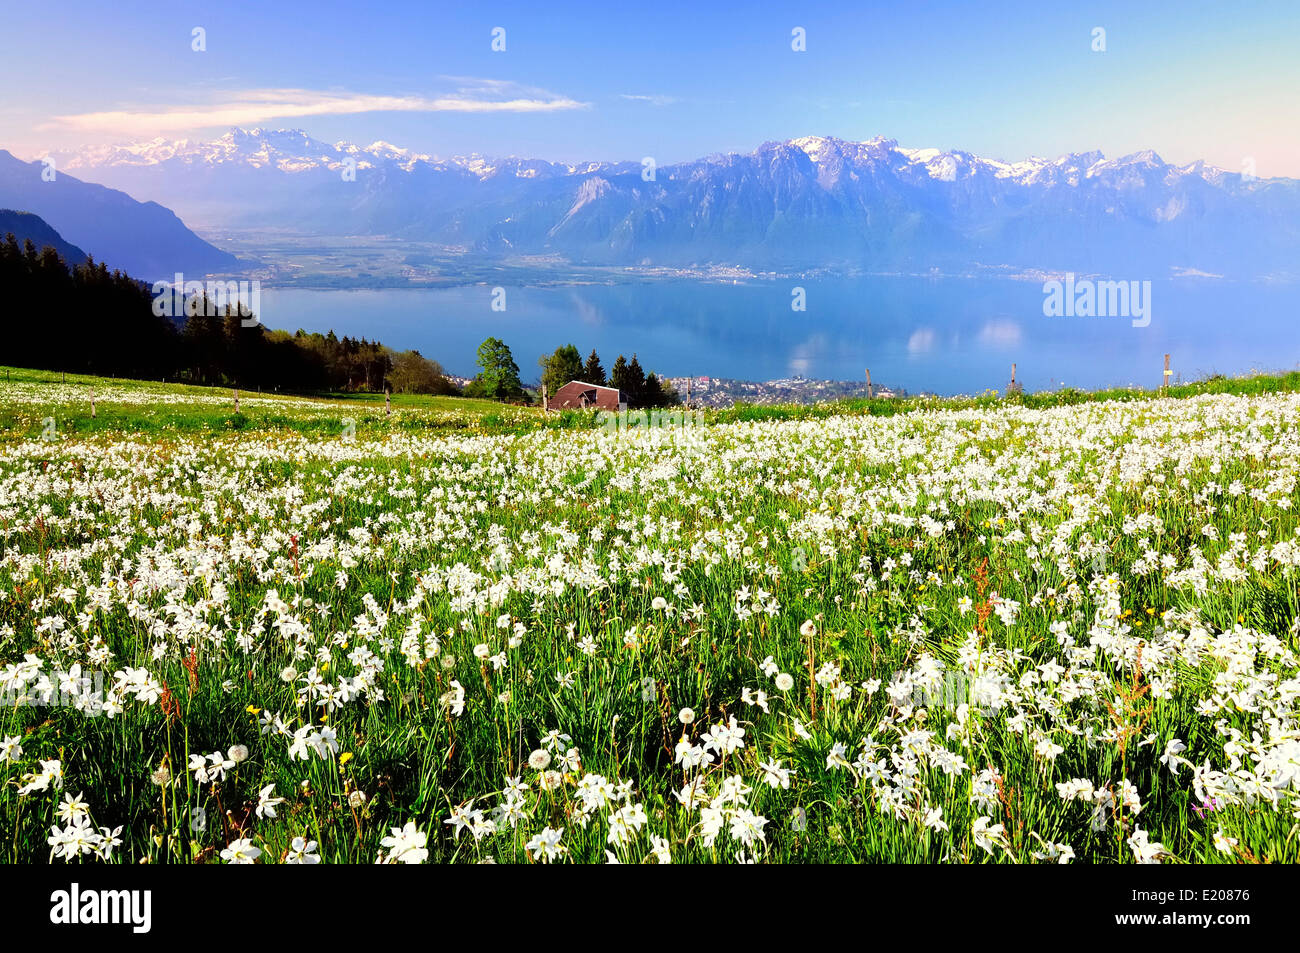 Meadow with white daffodils at Lake Geneva, Mt Dents du Midi at the back, Montreux, Canton of Vaud, Switzerland - Stock Image